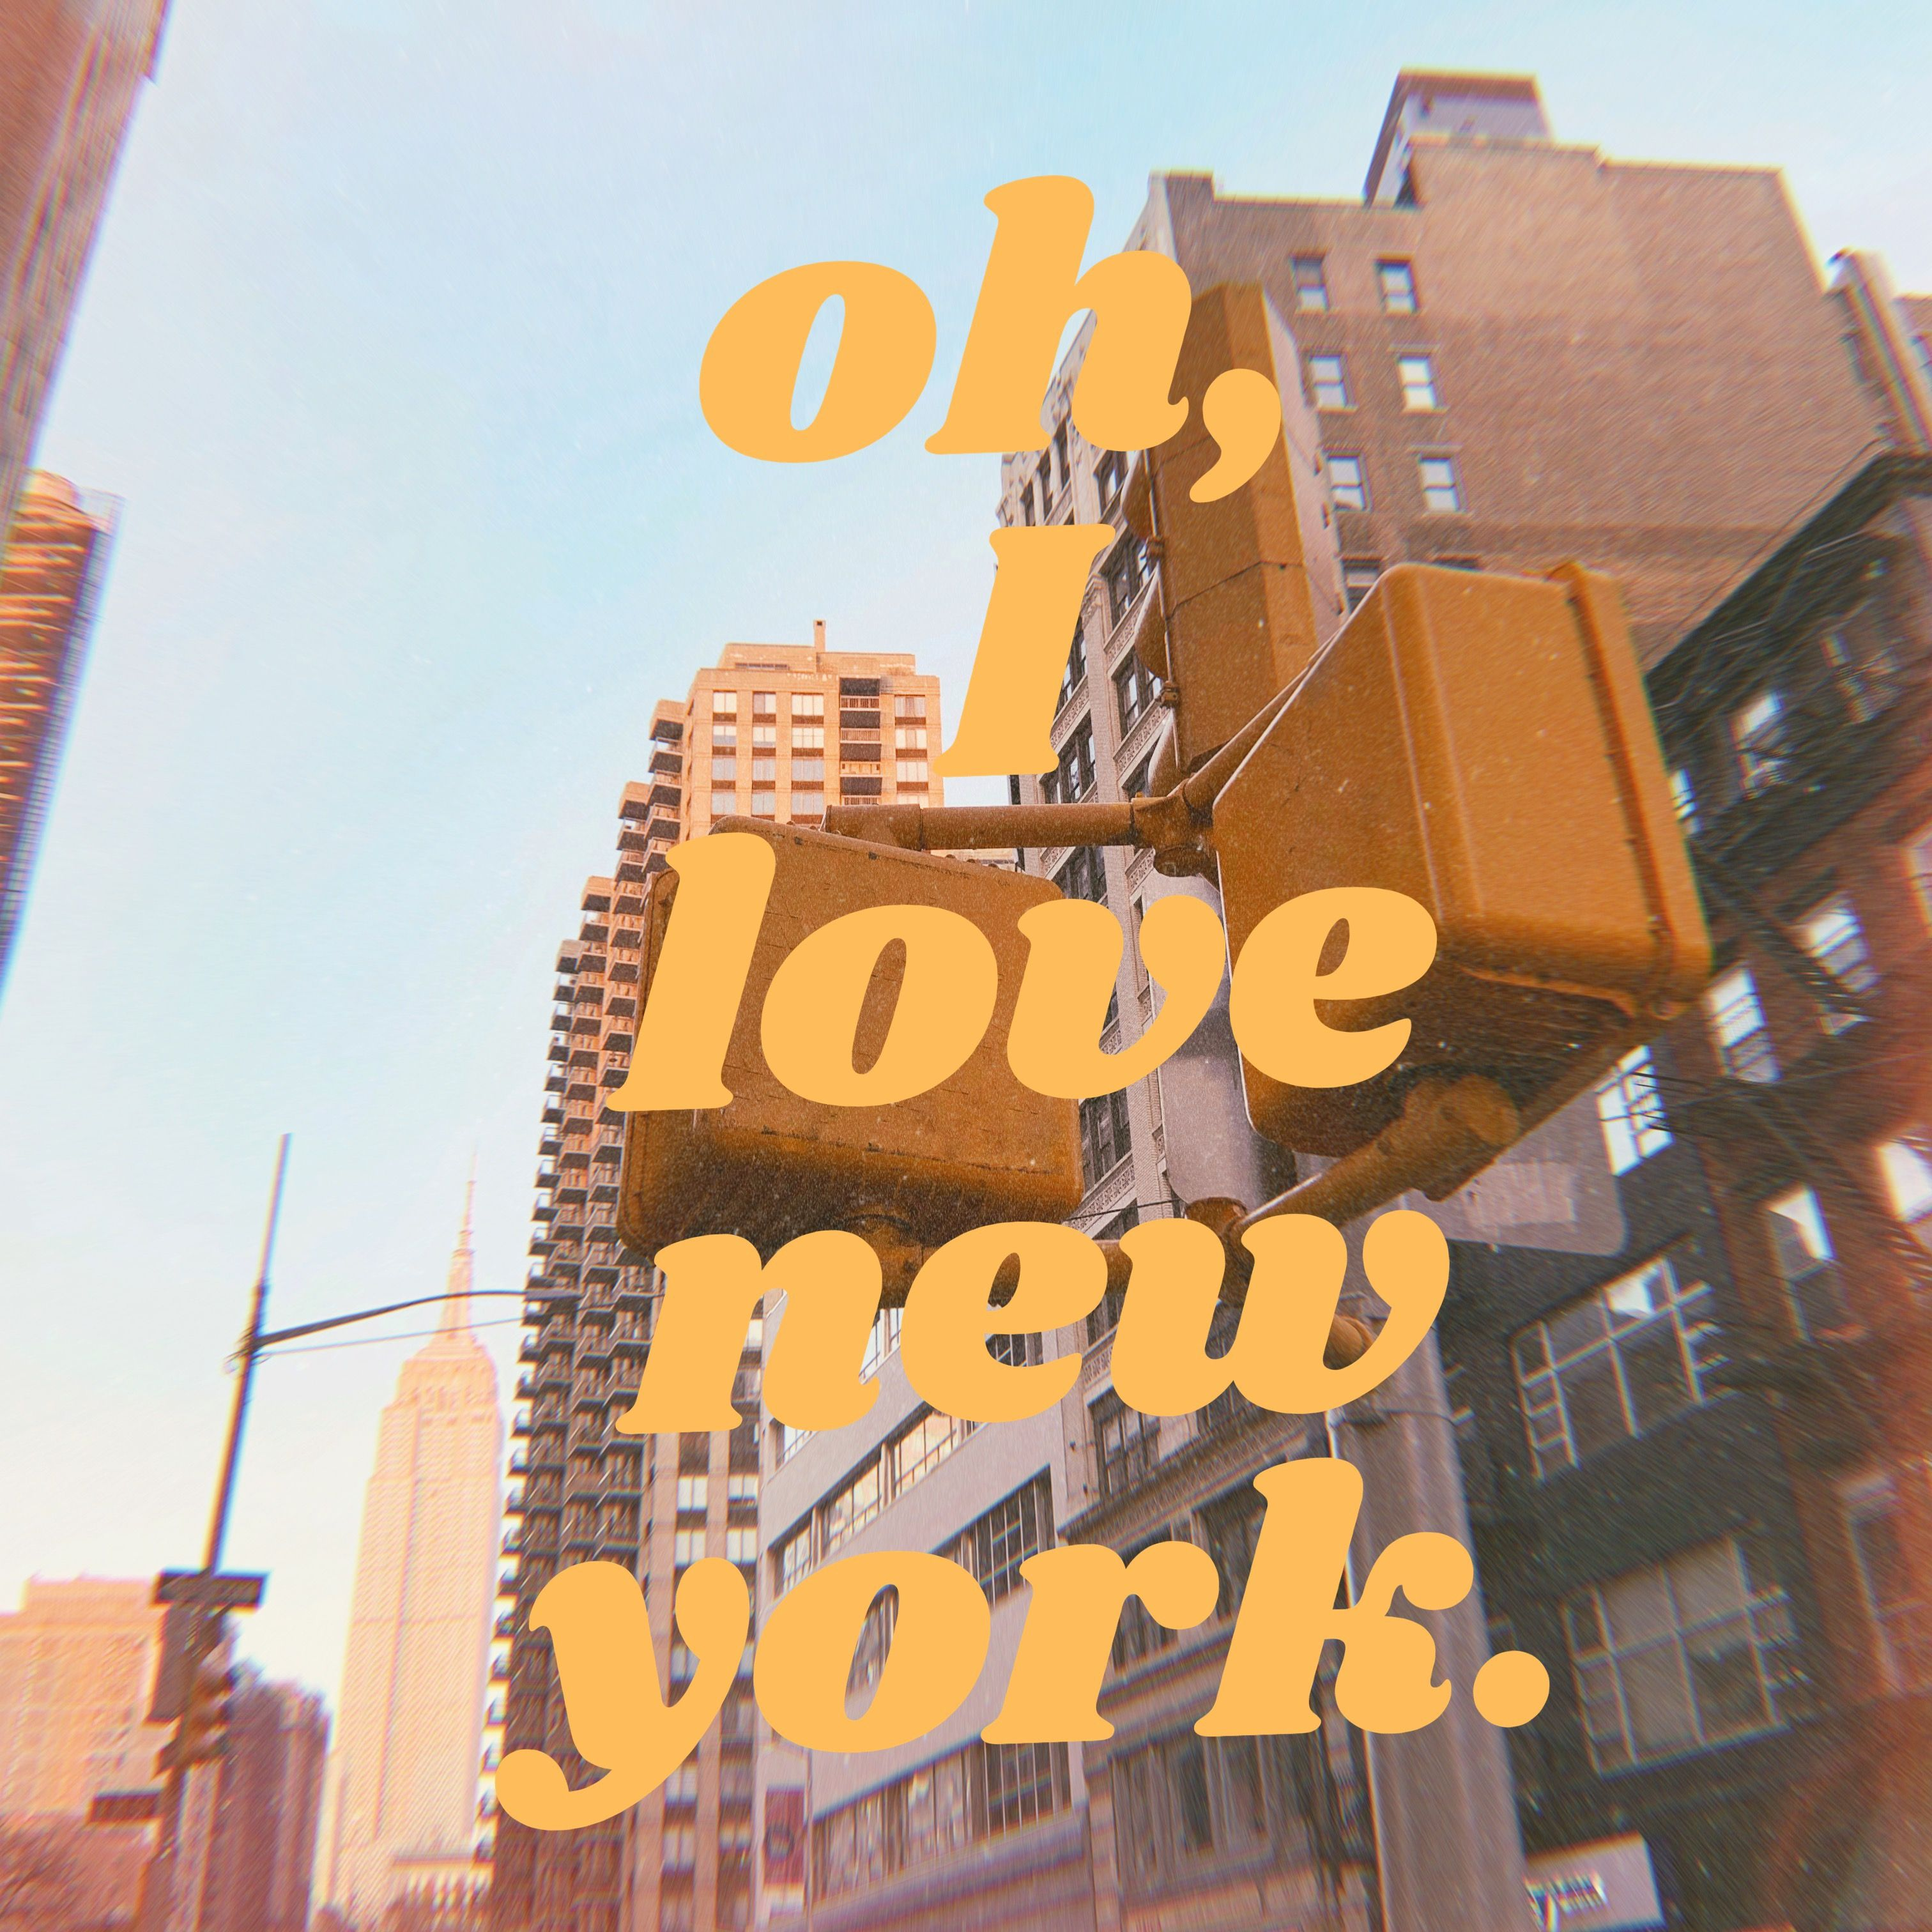 Oh I Love New York In 2020 Vintage New York Aesthetic Vintage Picture Collage